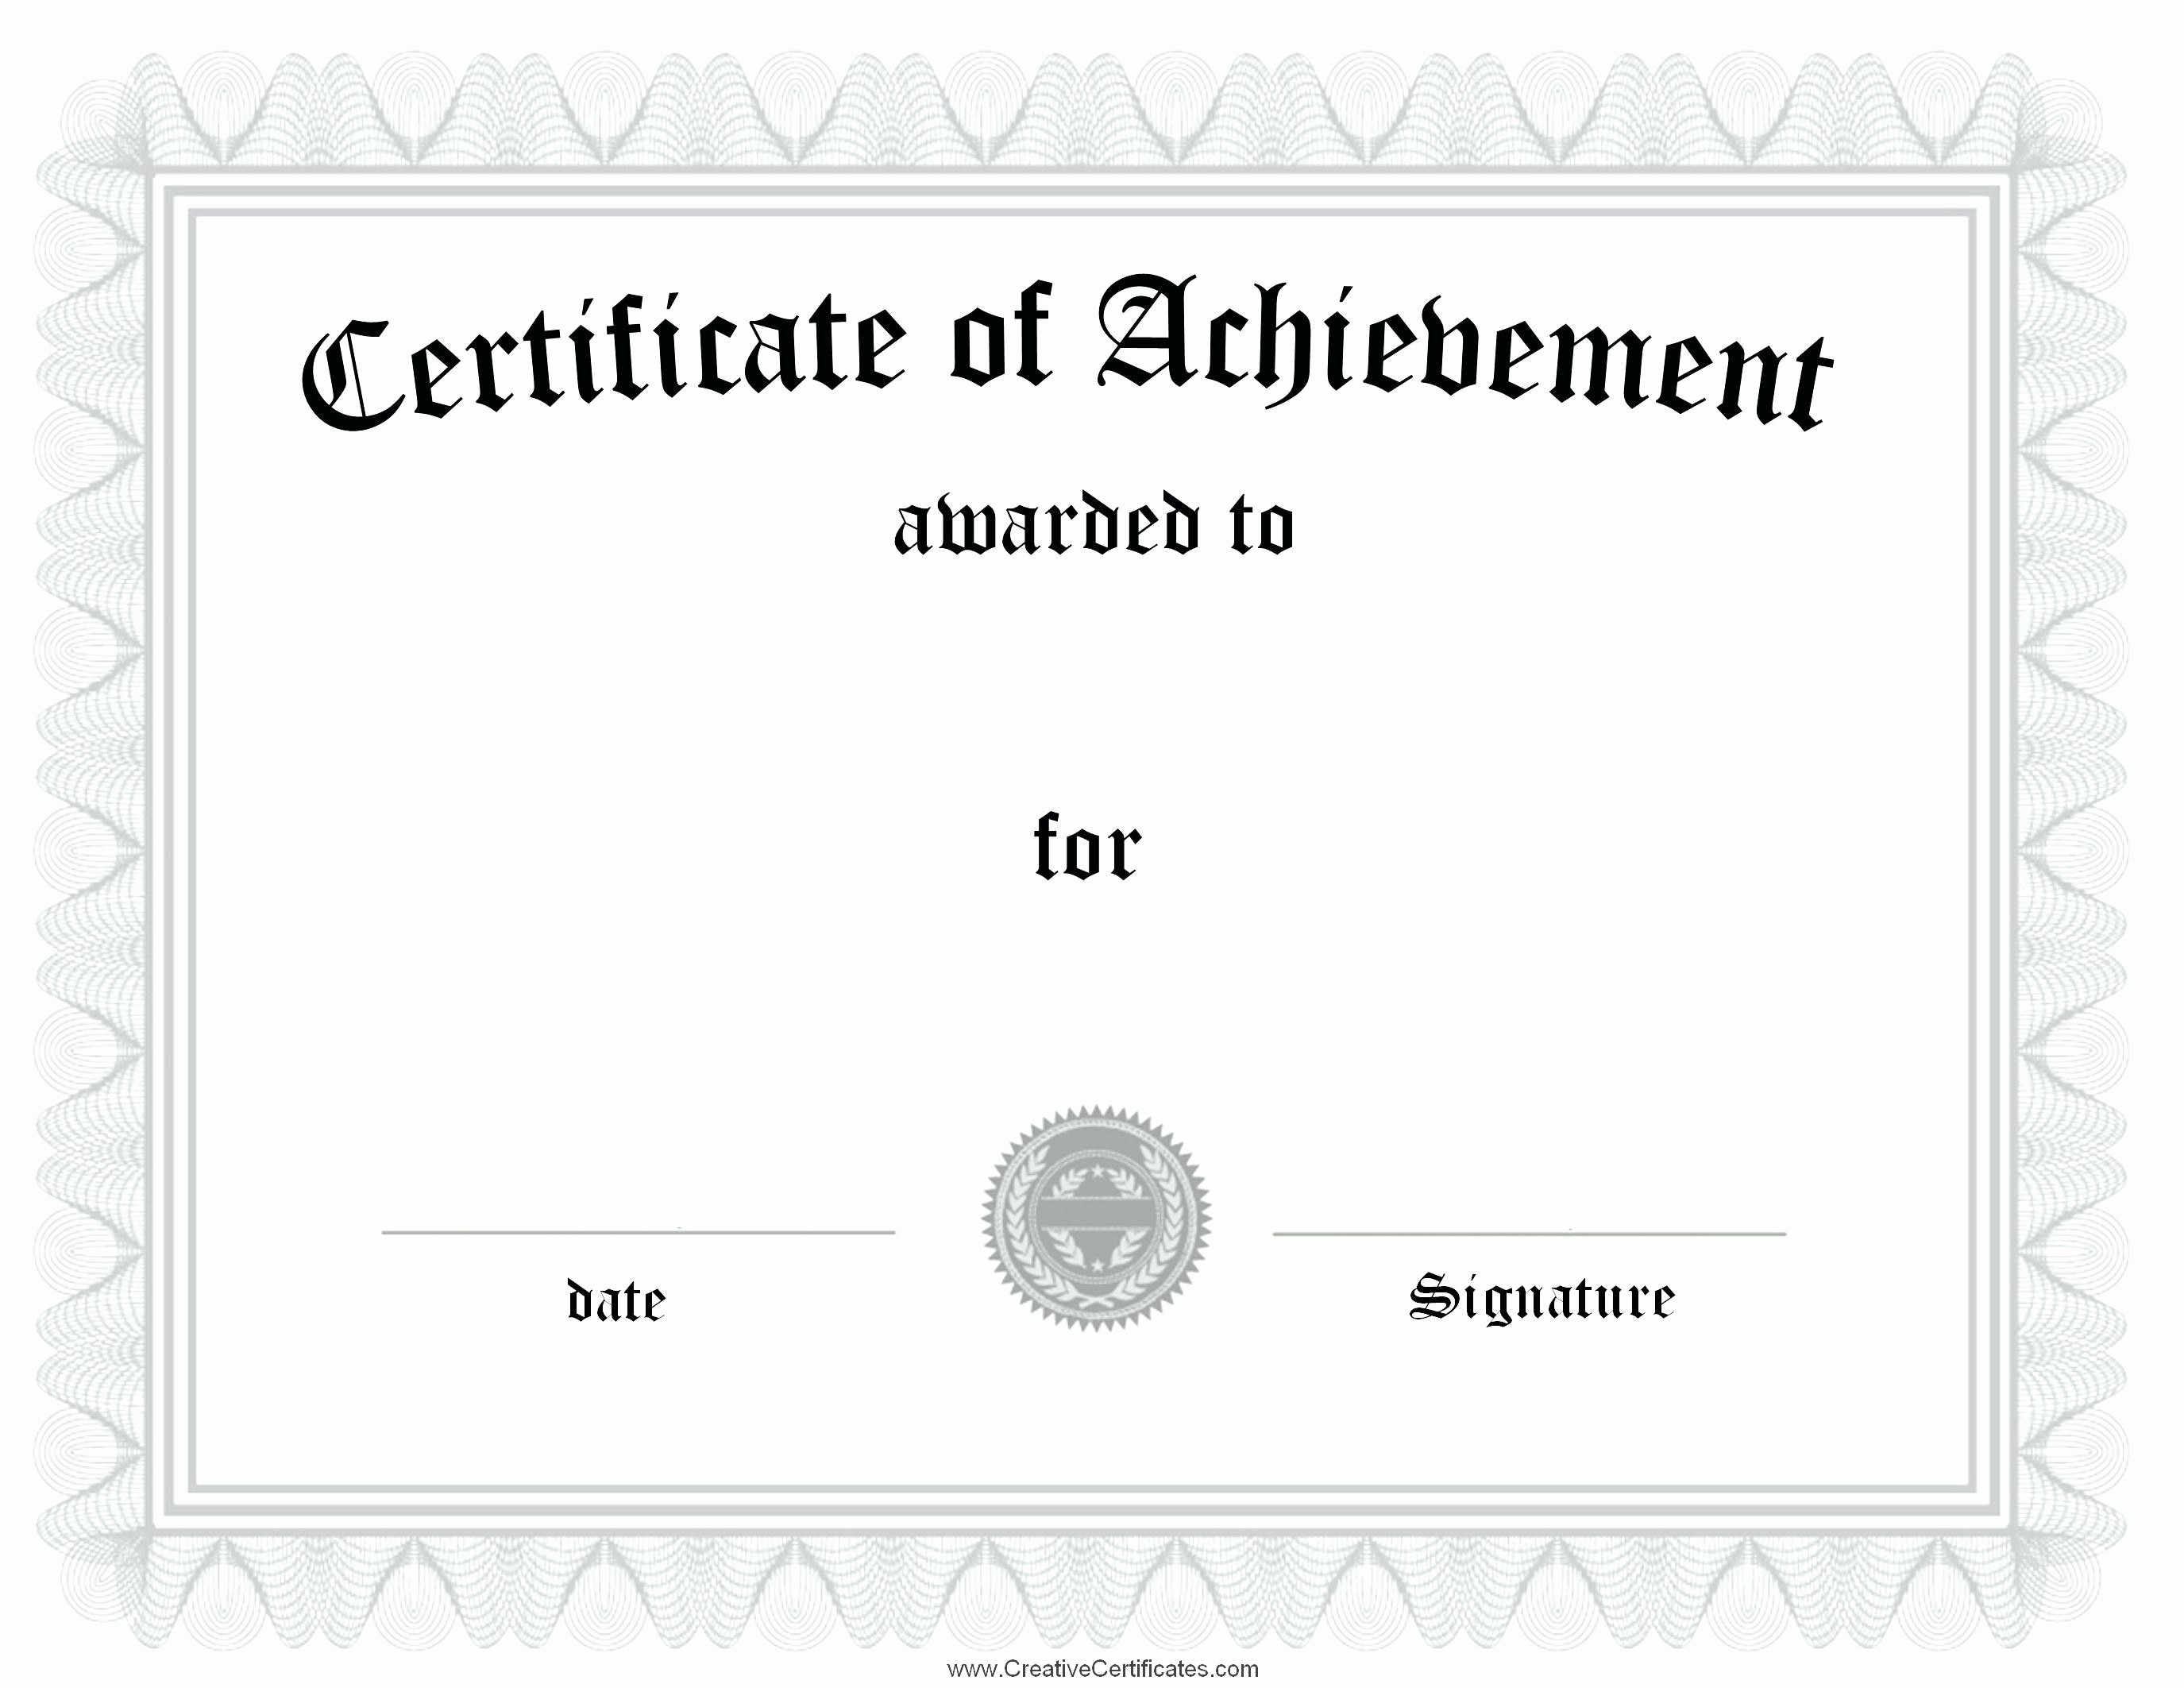 Awards Certificate Template Google Docs Luxury 18 Certificate Templates Google Docs